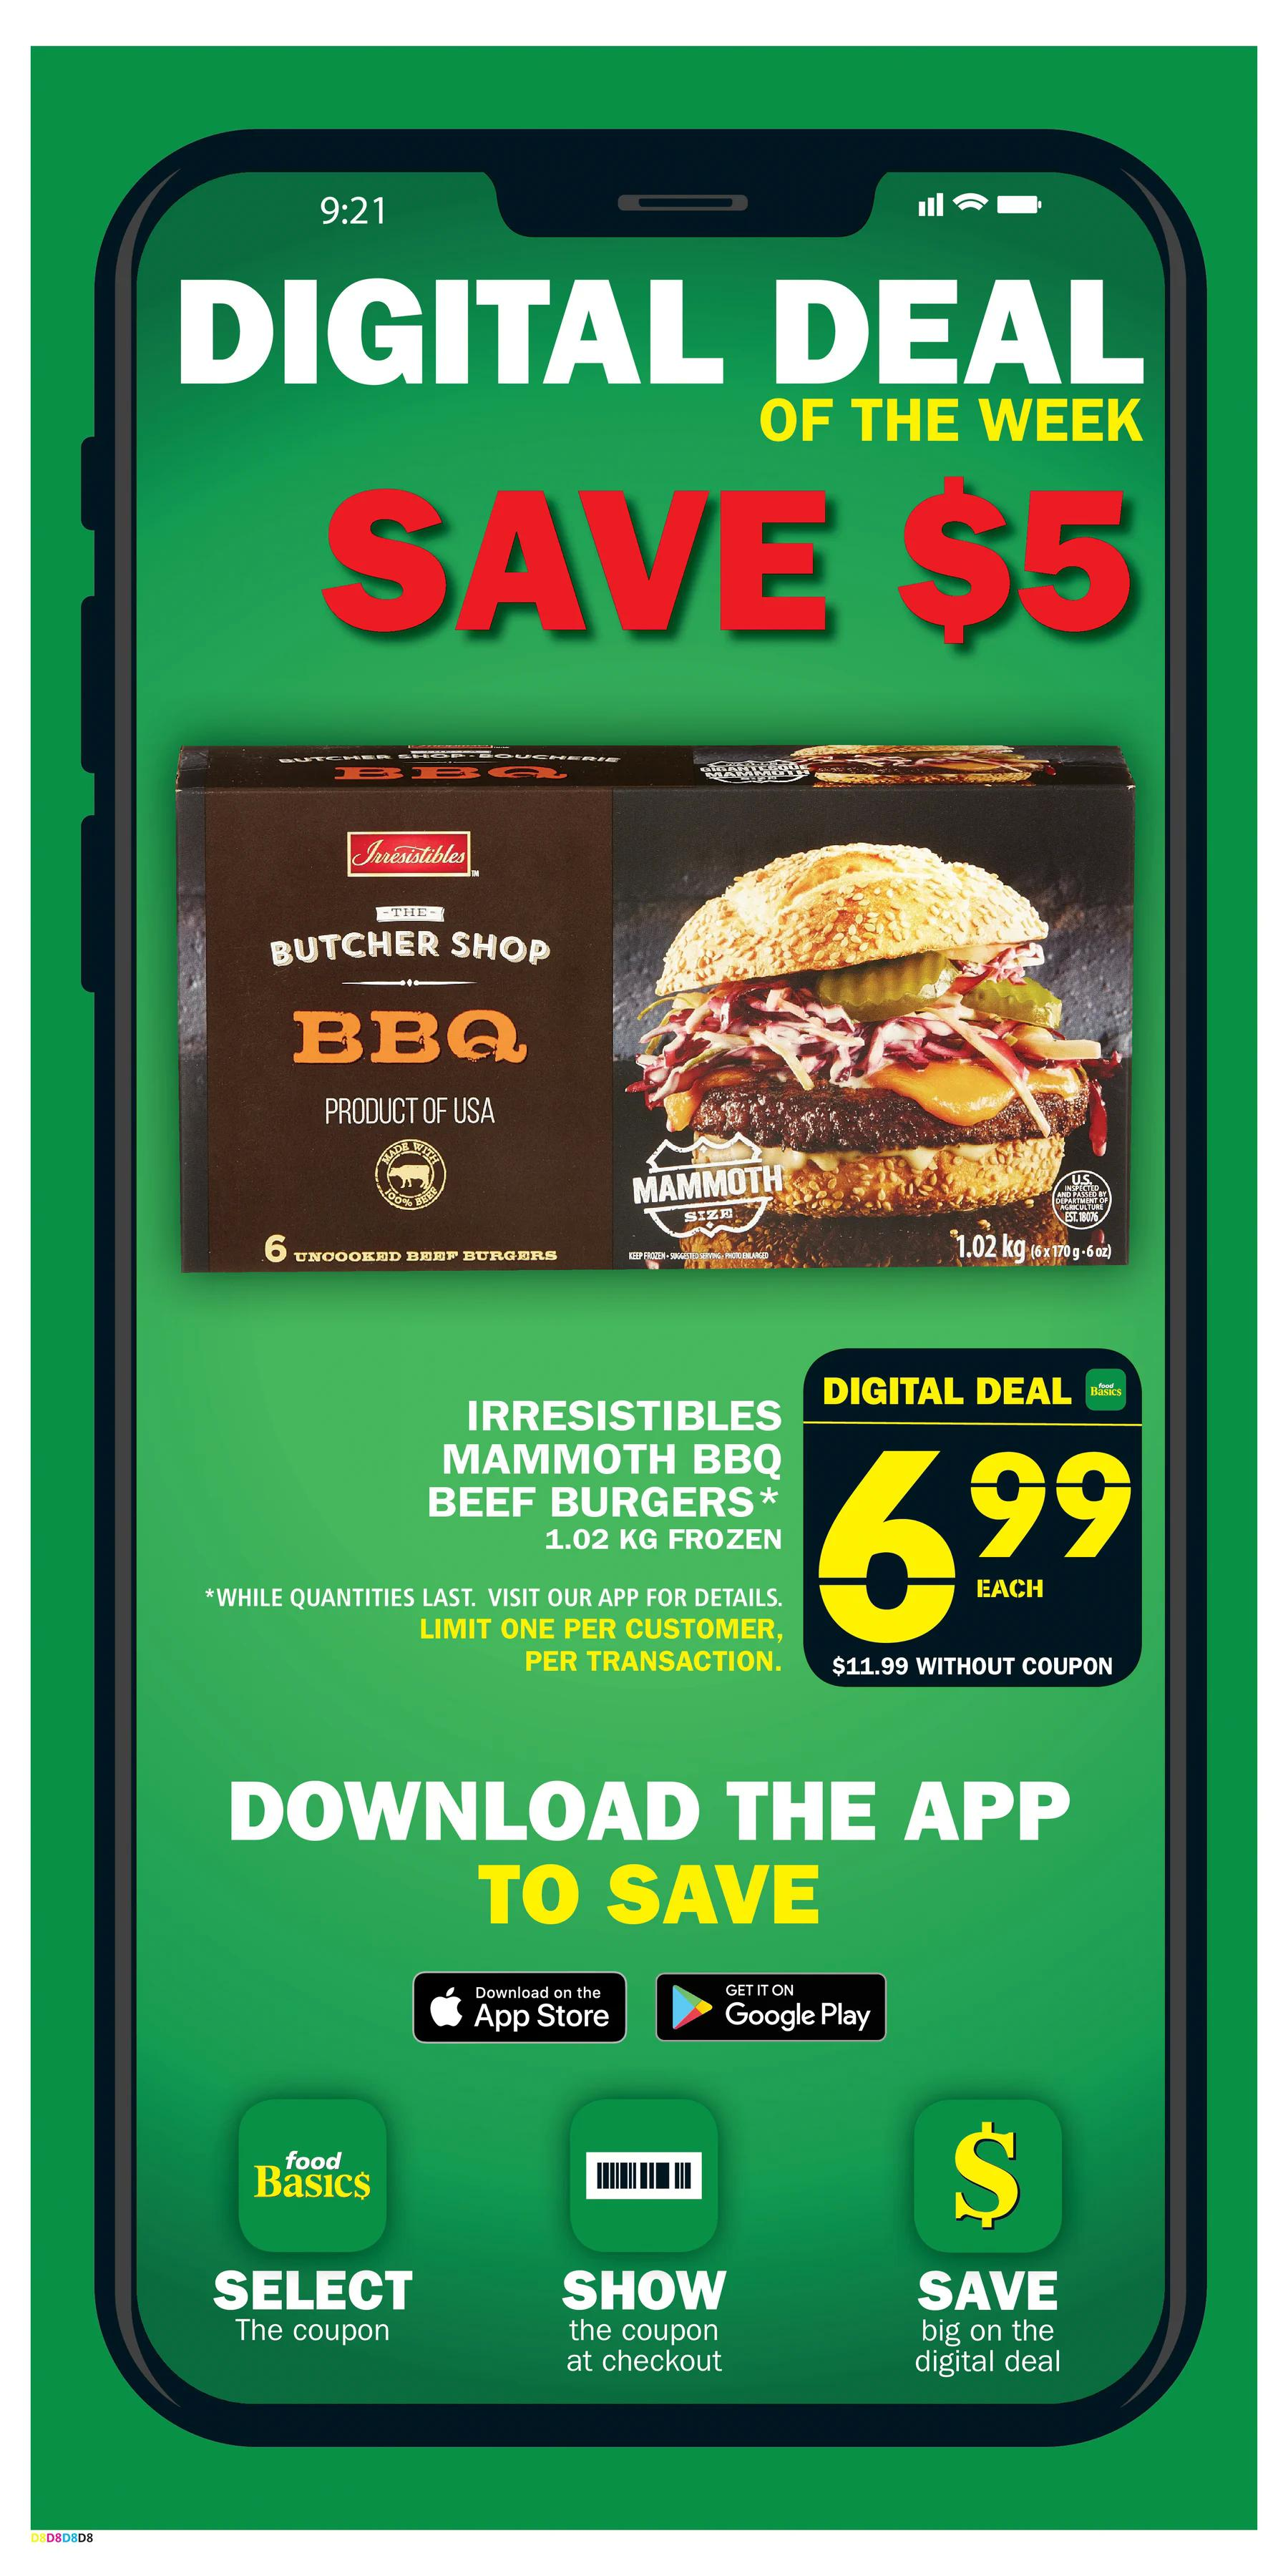 Food Basics - Weekly Flyer Specials - Page 7